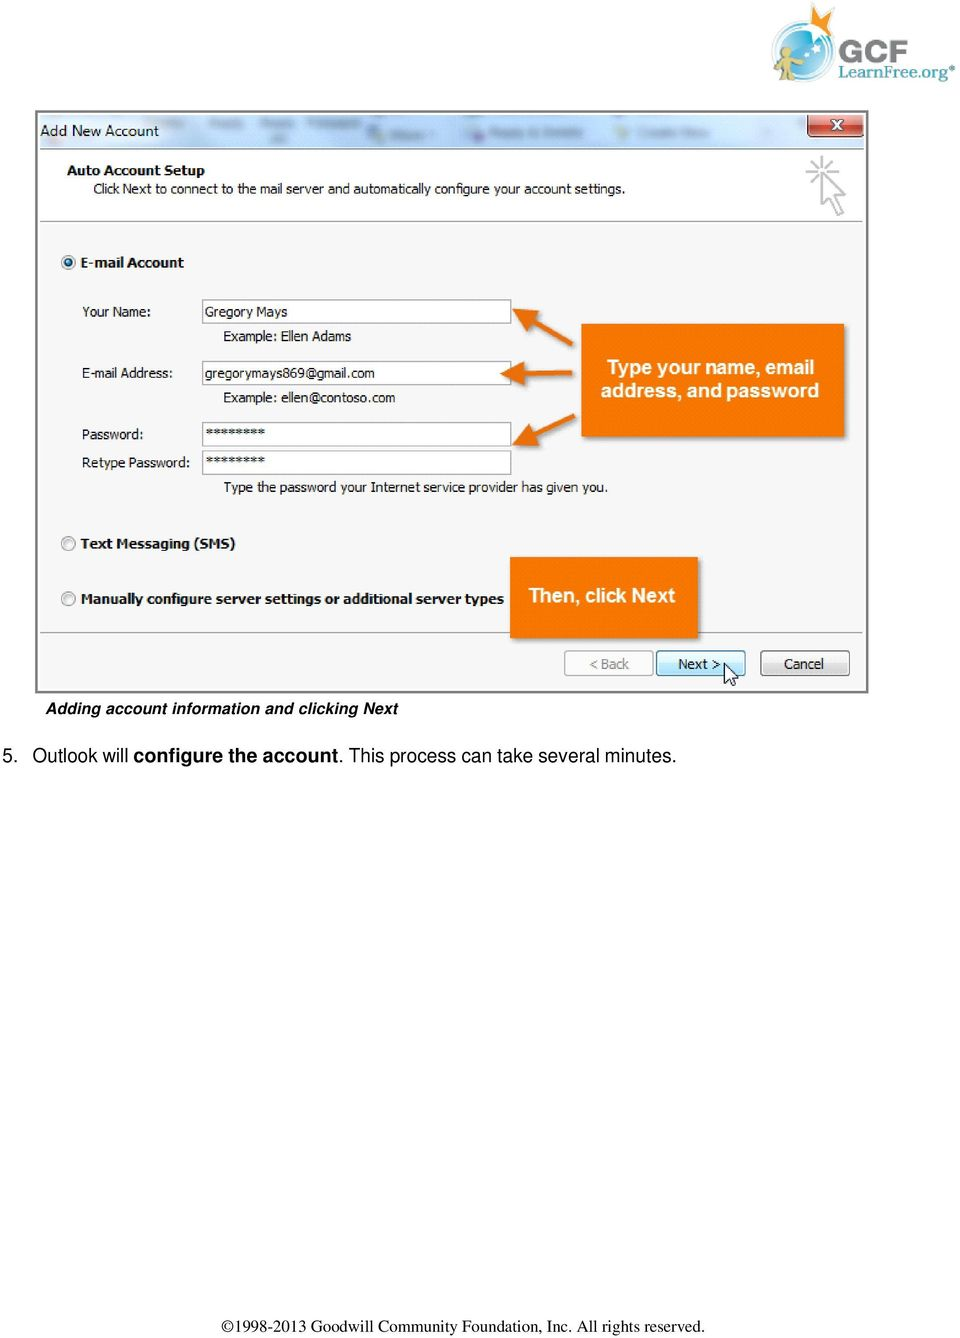 Outlook will configure the